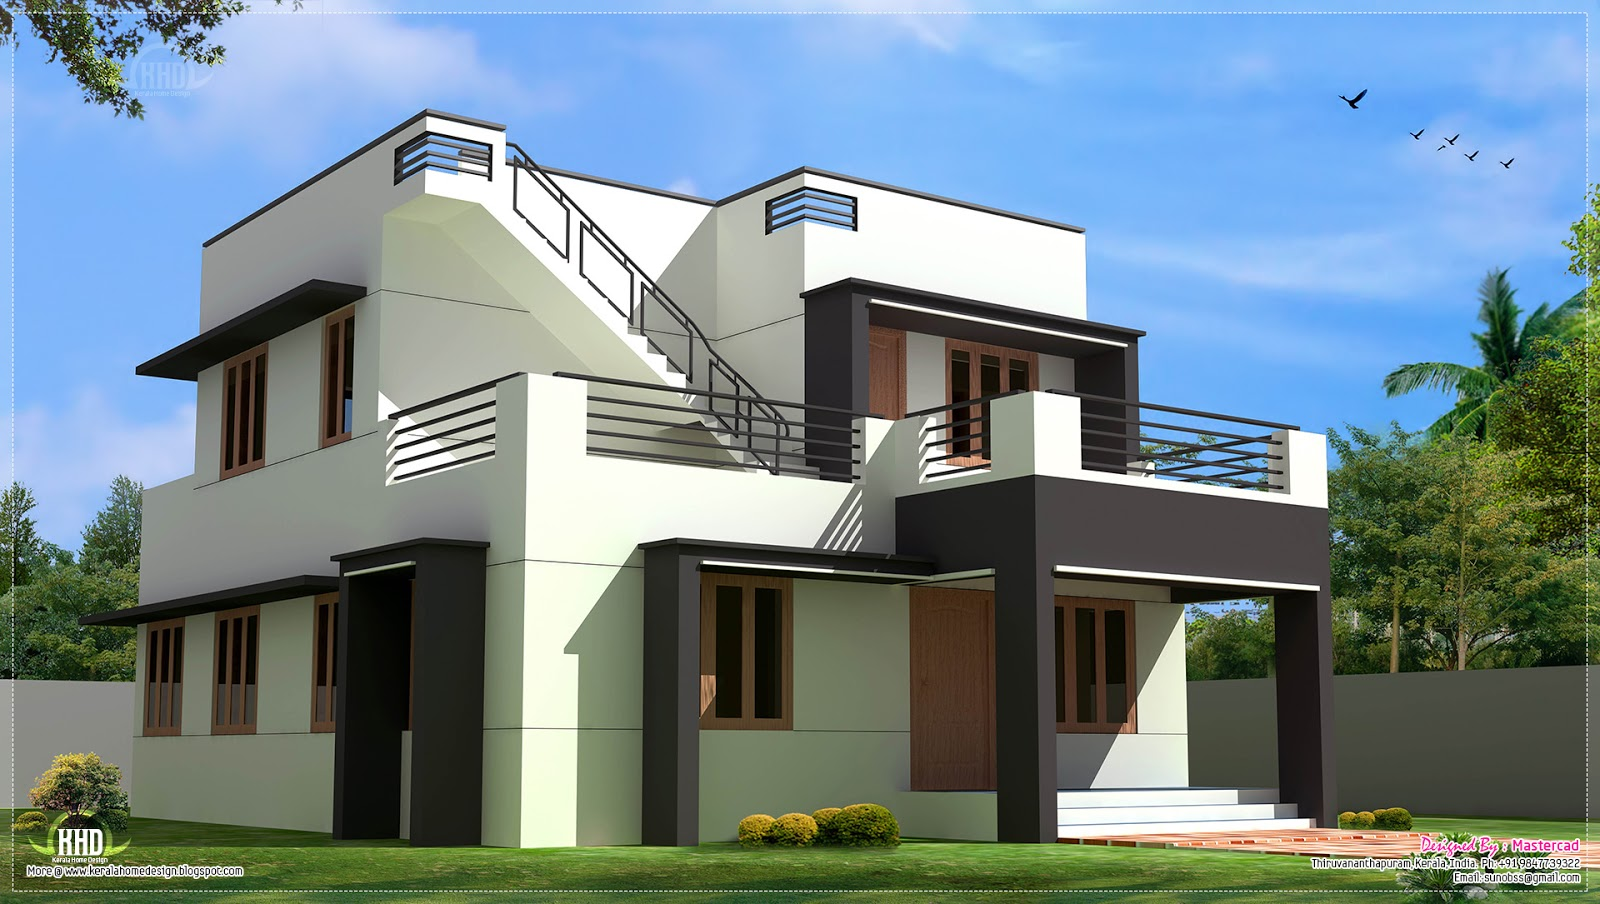 Great Modern House Design 1600 x 904 · 272 kB · jpeg